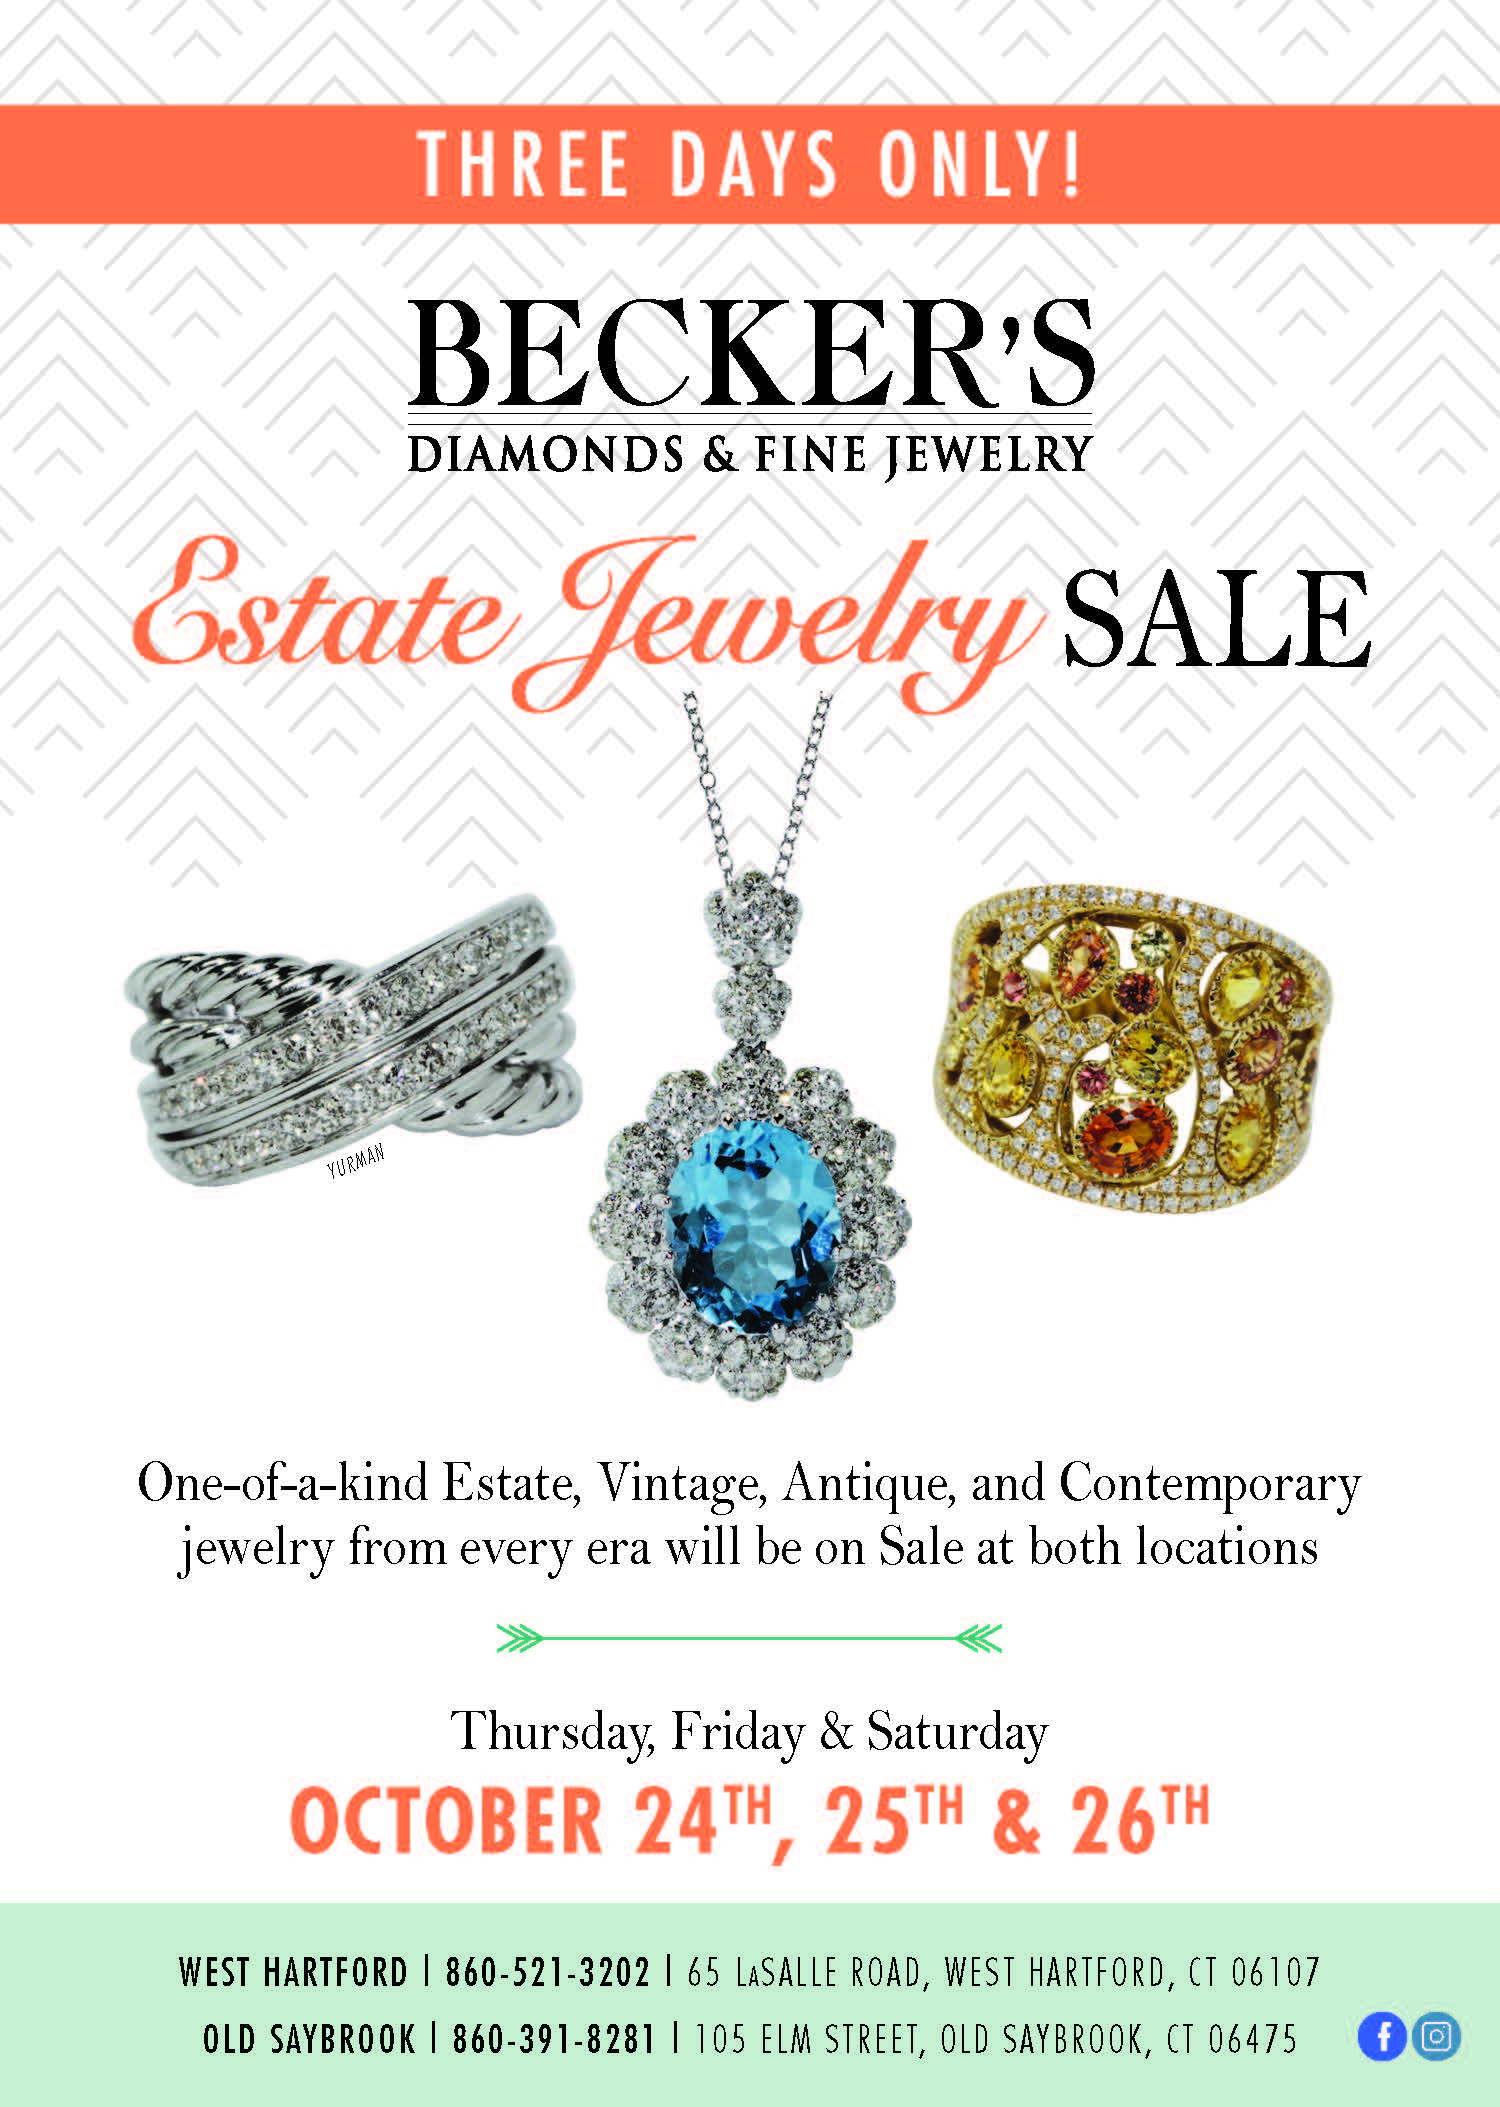 Estate jewelry sale October 24th - 26th 2019